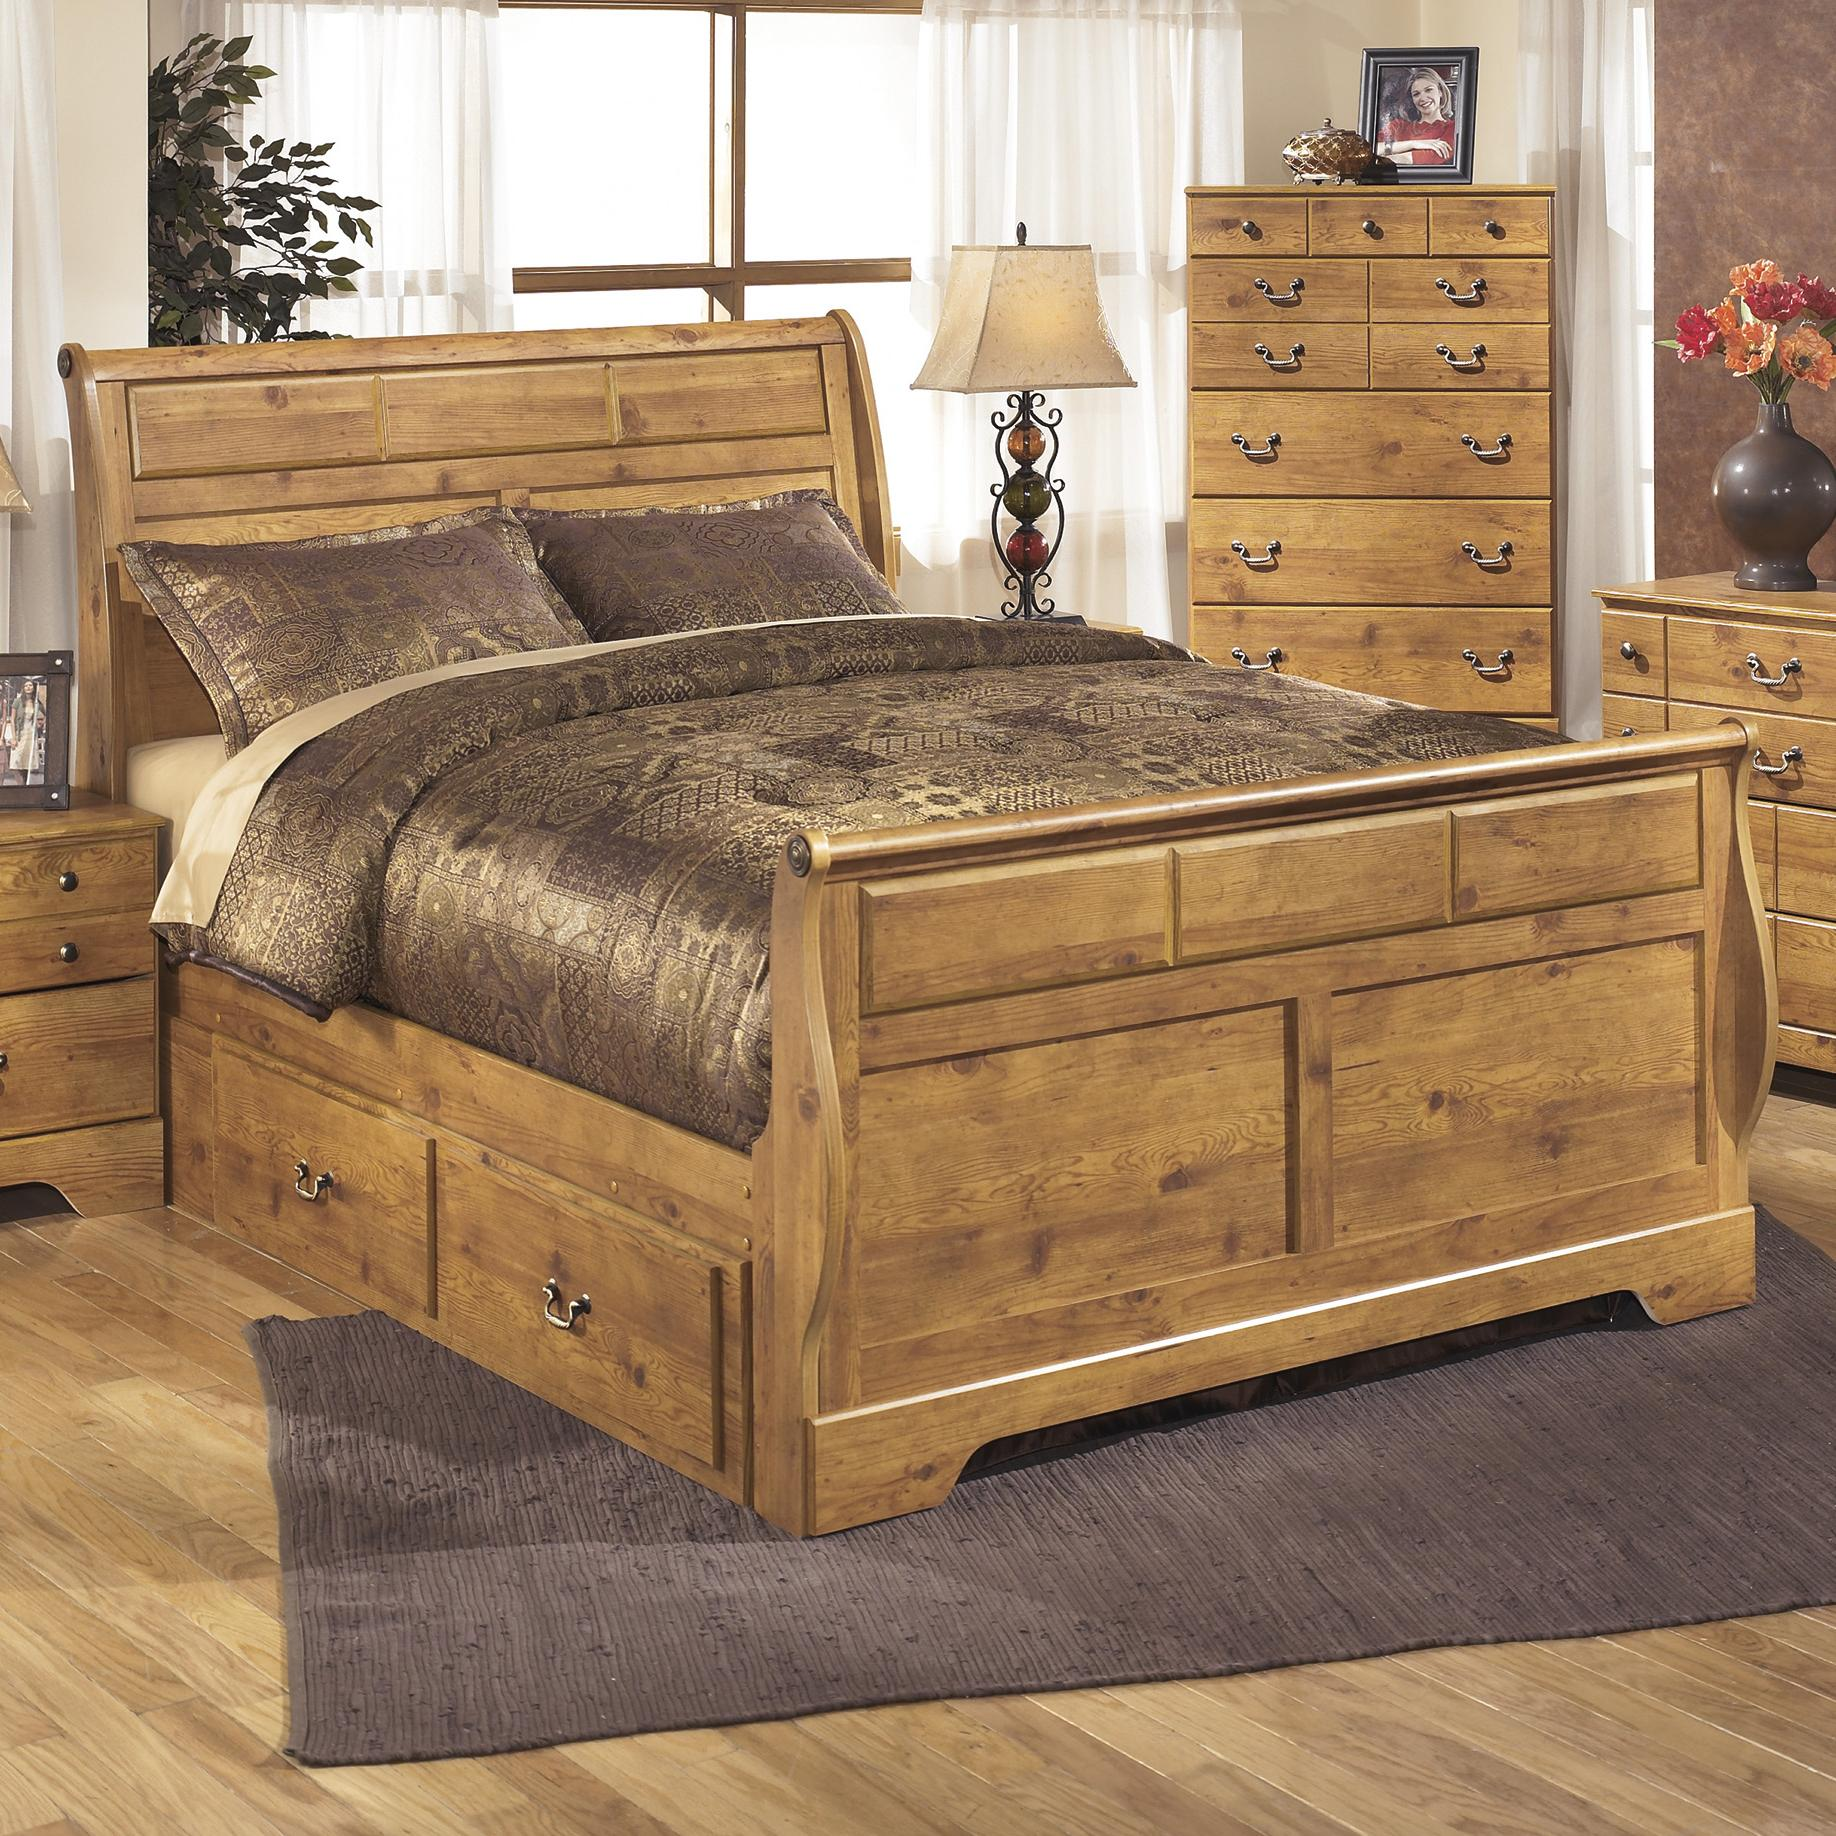 Signature Design By Ashley Bittersweet Queen Sleigh Bed With Under Bed Storage Olinde 39 S